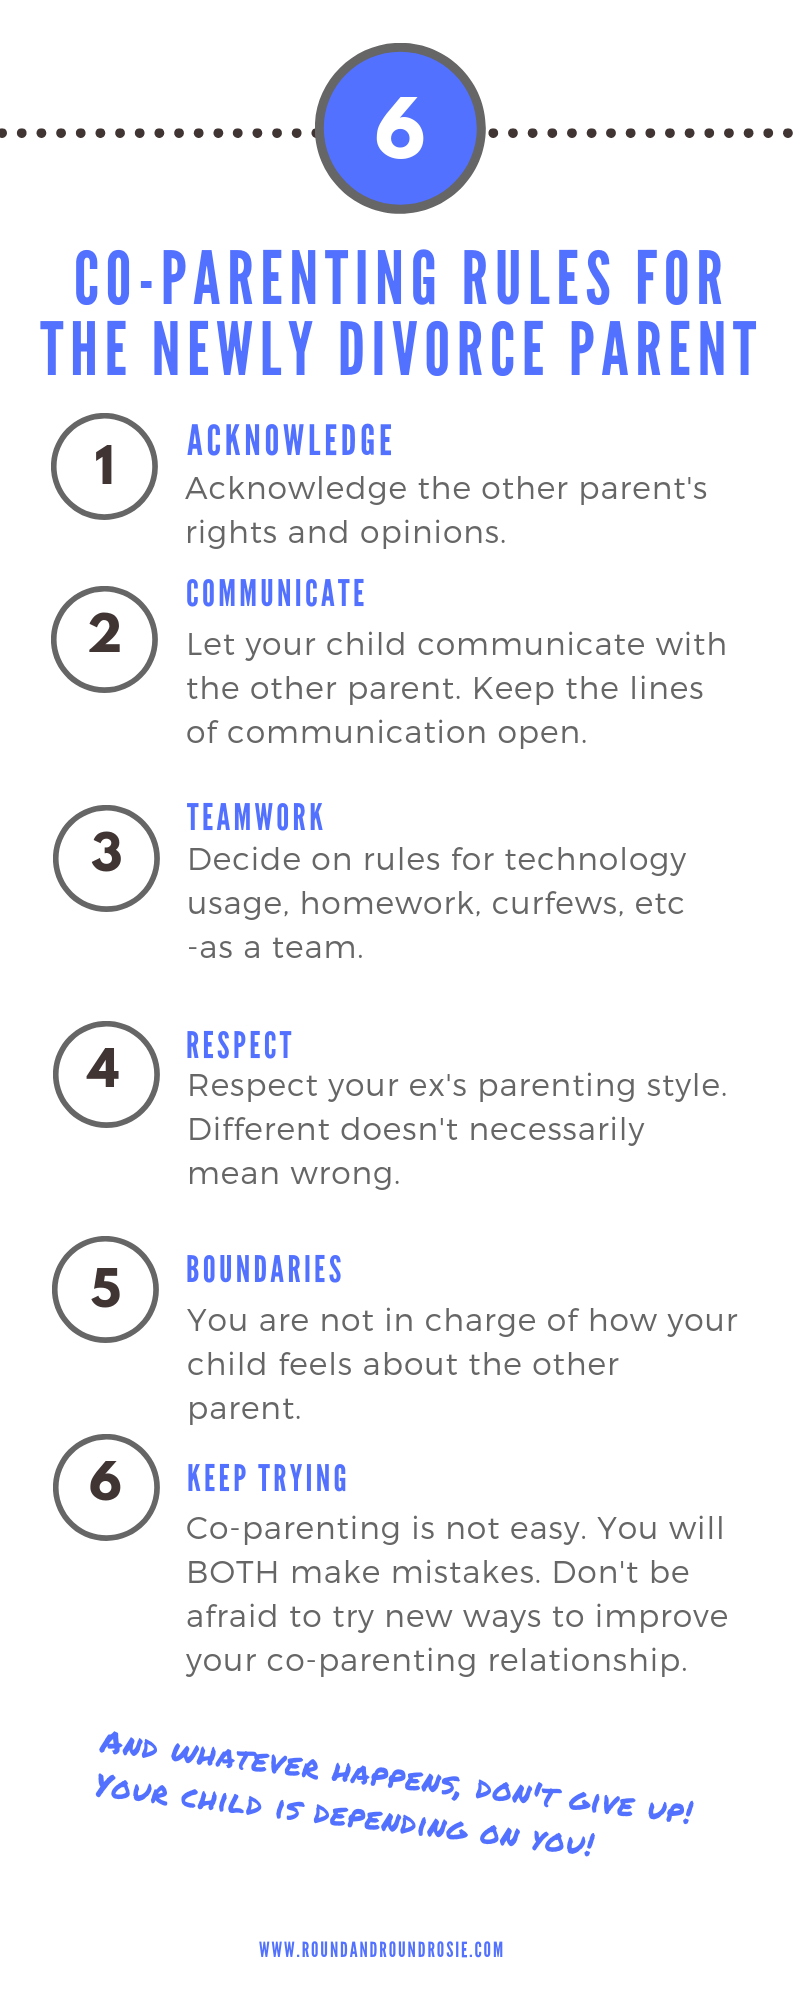 Co-Parenting rules for the newly Divorce Parent